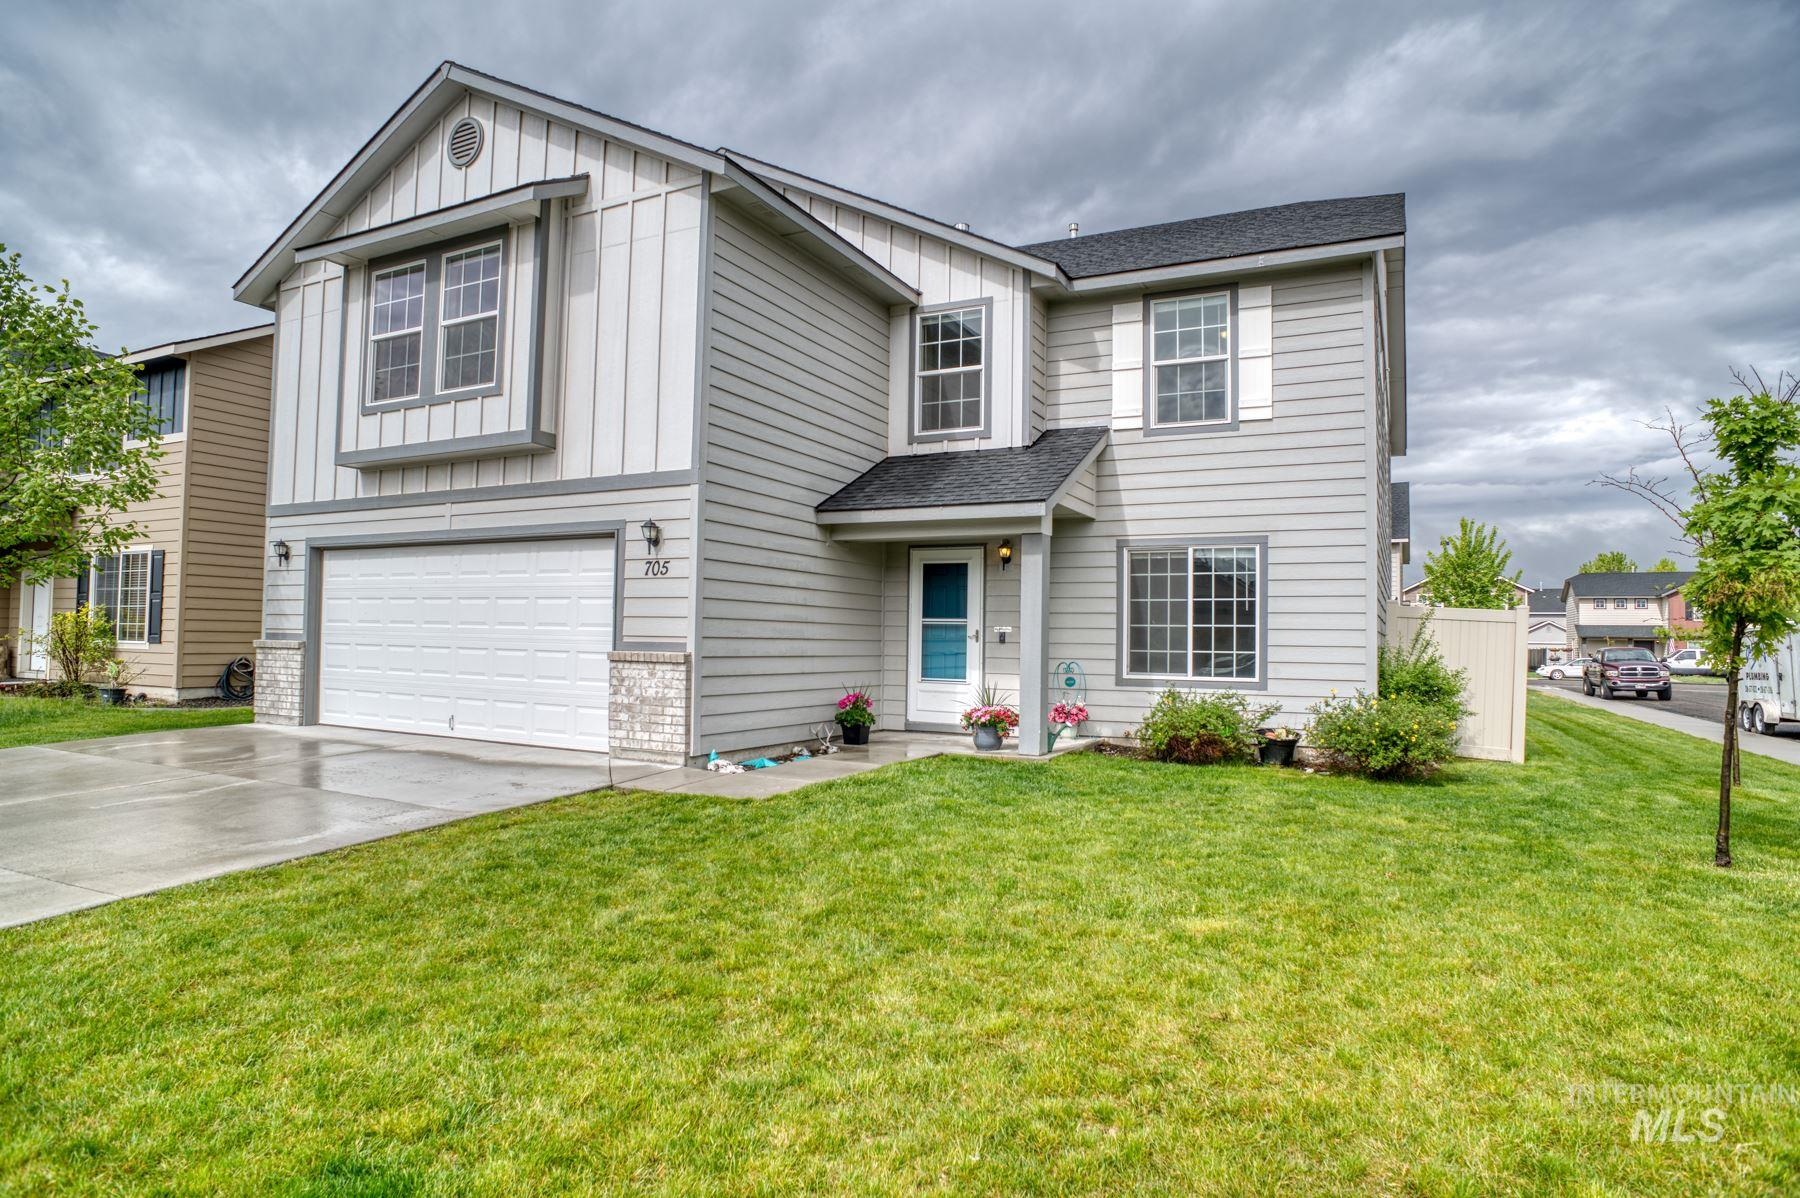 Live large in this spacious home w/corner lot & tons of room to stretch! Cook the perfect meal for friends & family in your well-appointed kitchen w/gas range, tons of storage, & ample counter space, then slip away to the huge master retreat to relax, reset, & recharge! Main-level bedroom and full bath is perfect when mom comes to visit! Living room? Check! Family room? Check! Bonus Room? Check!! Extended stamped concrete patio & shed for additional storage! Easy access to the freeway for a quick commute!